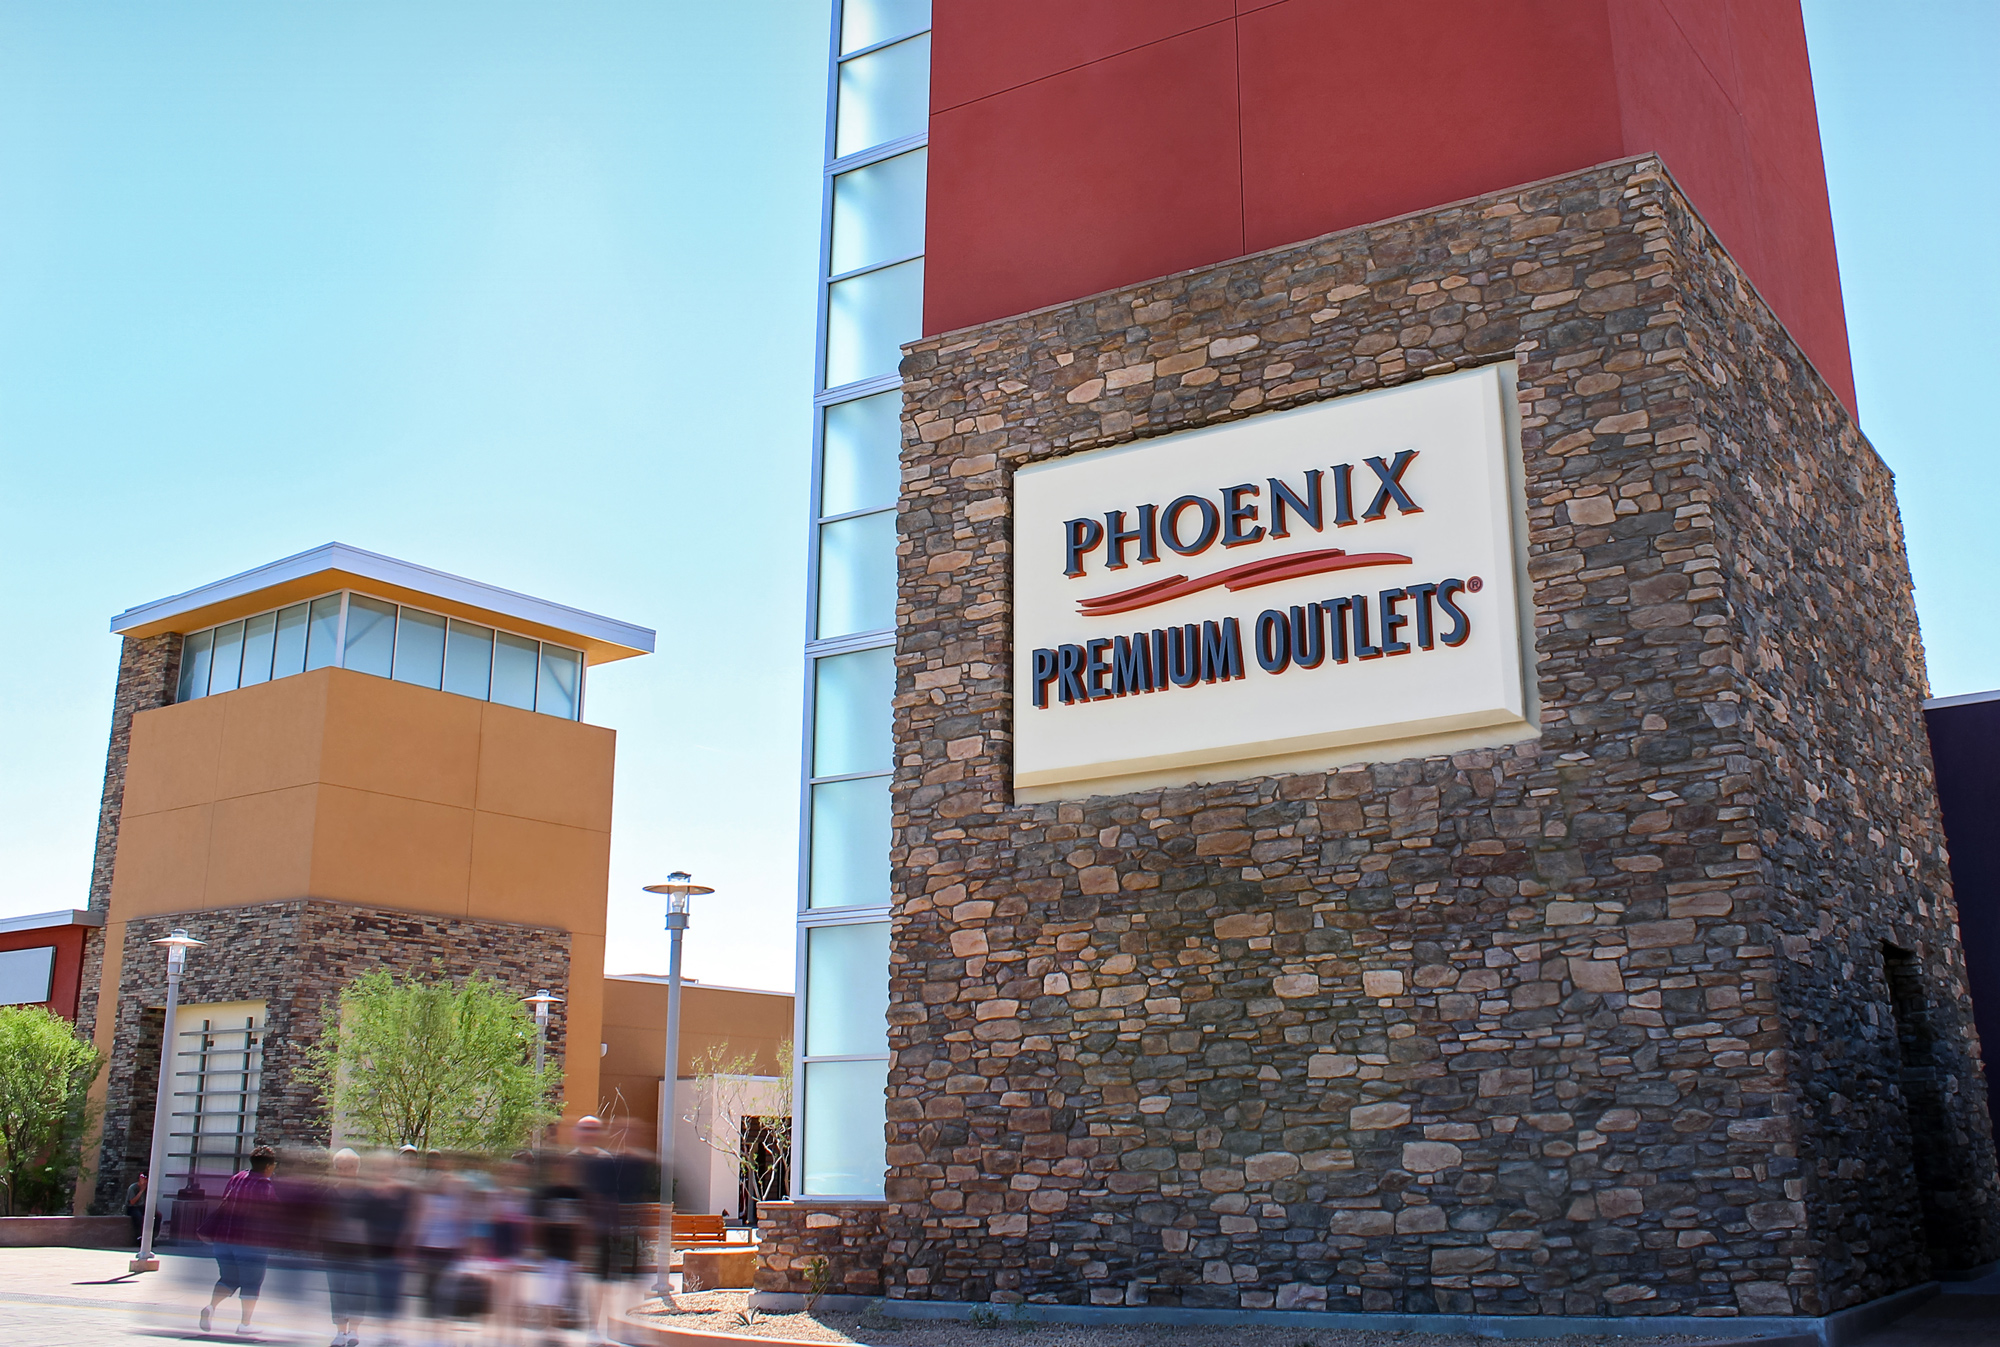 Phoenix Premium Outlets logo is halo illuminated against an aluminum cabinet. This branding element is also visible from the freeway.